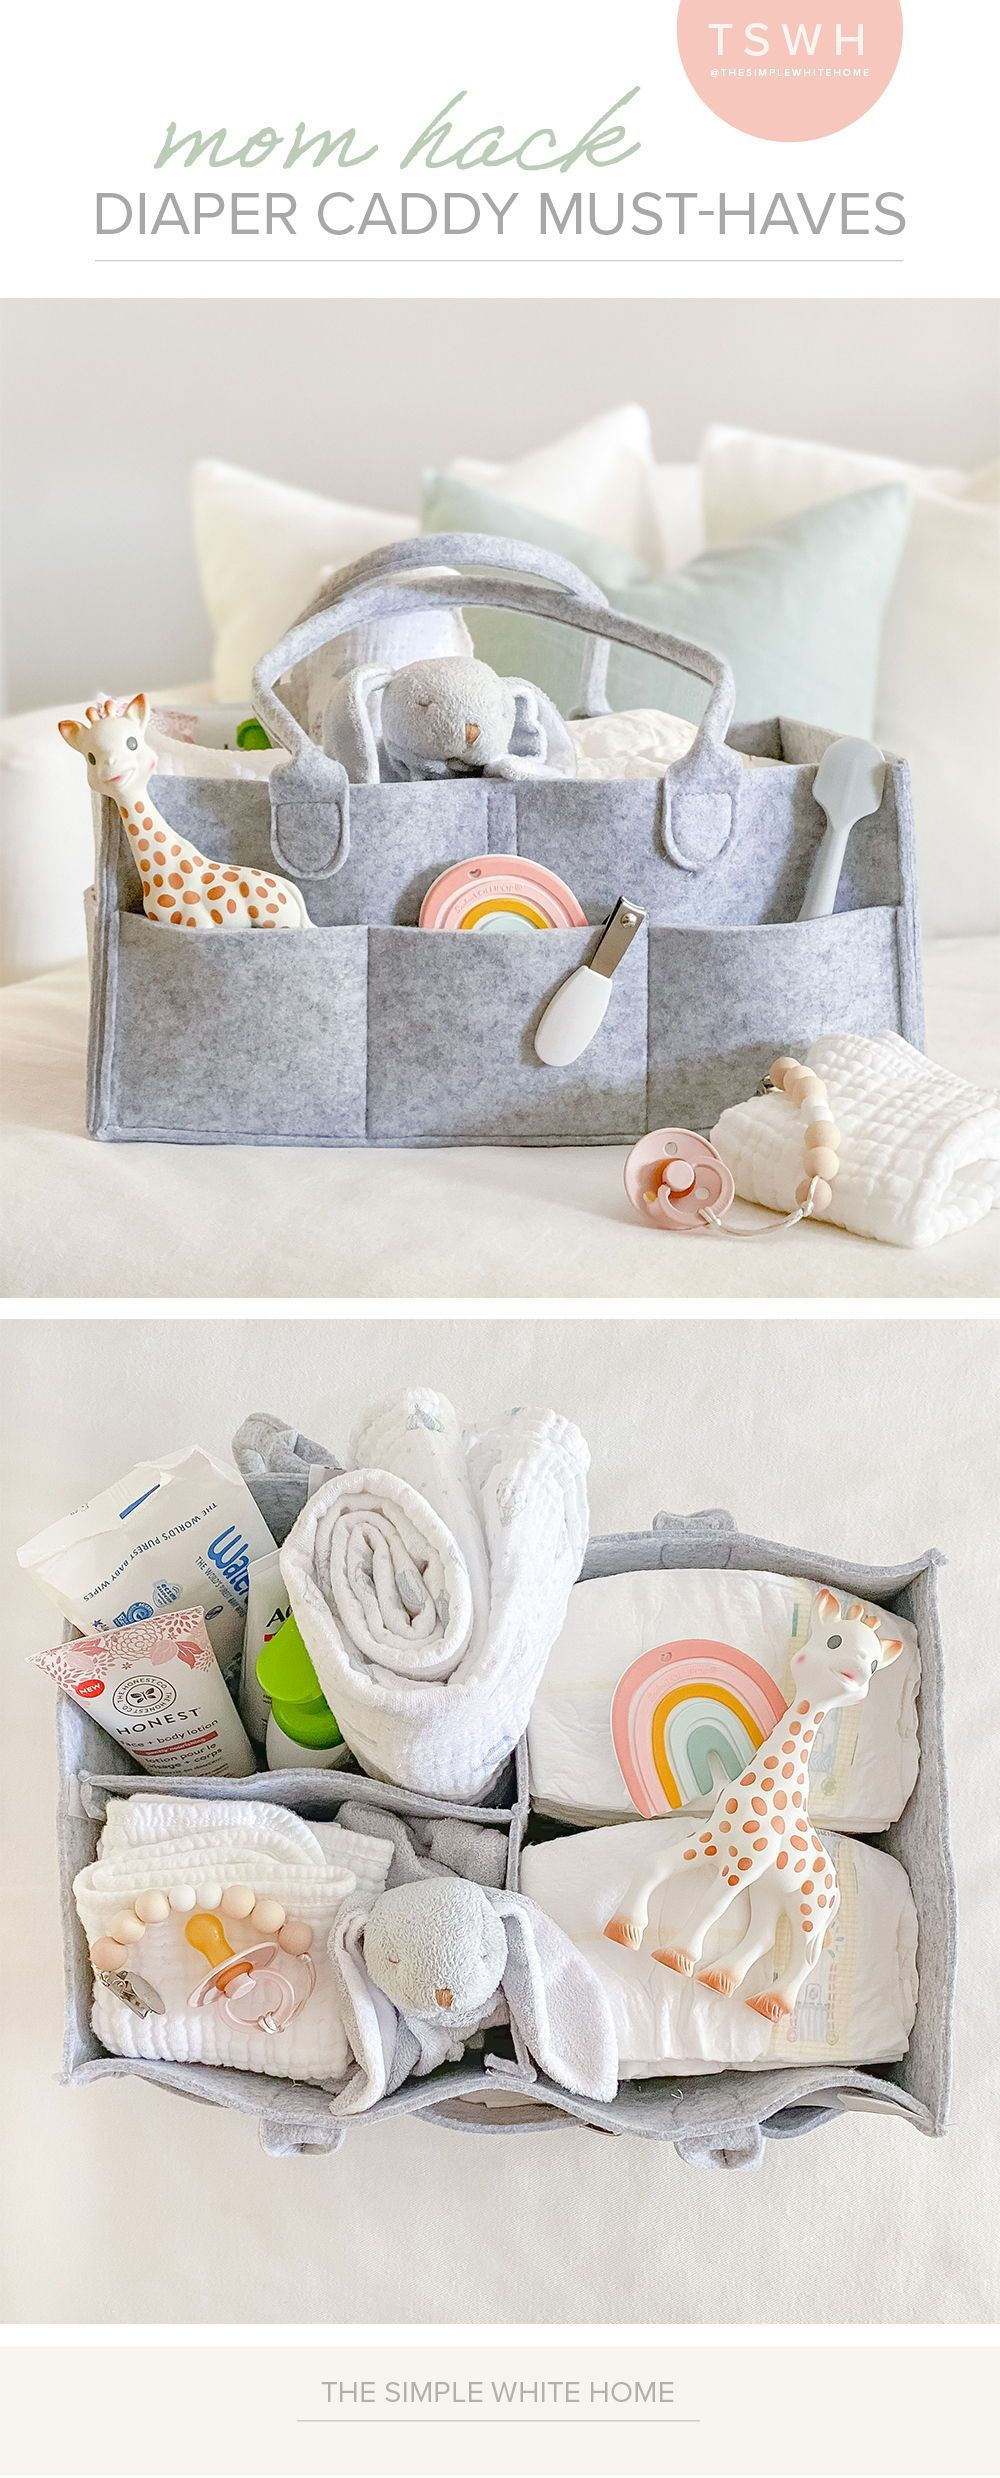 One of my favorite Mom tips is to create a diaper caddies for different rooms of your home. I have one in my living room and I also kept one in our bedroom when out girl was little. Stock it with all the item you use most and it will save you so many trips running around the house. Check out my list of favs!